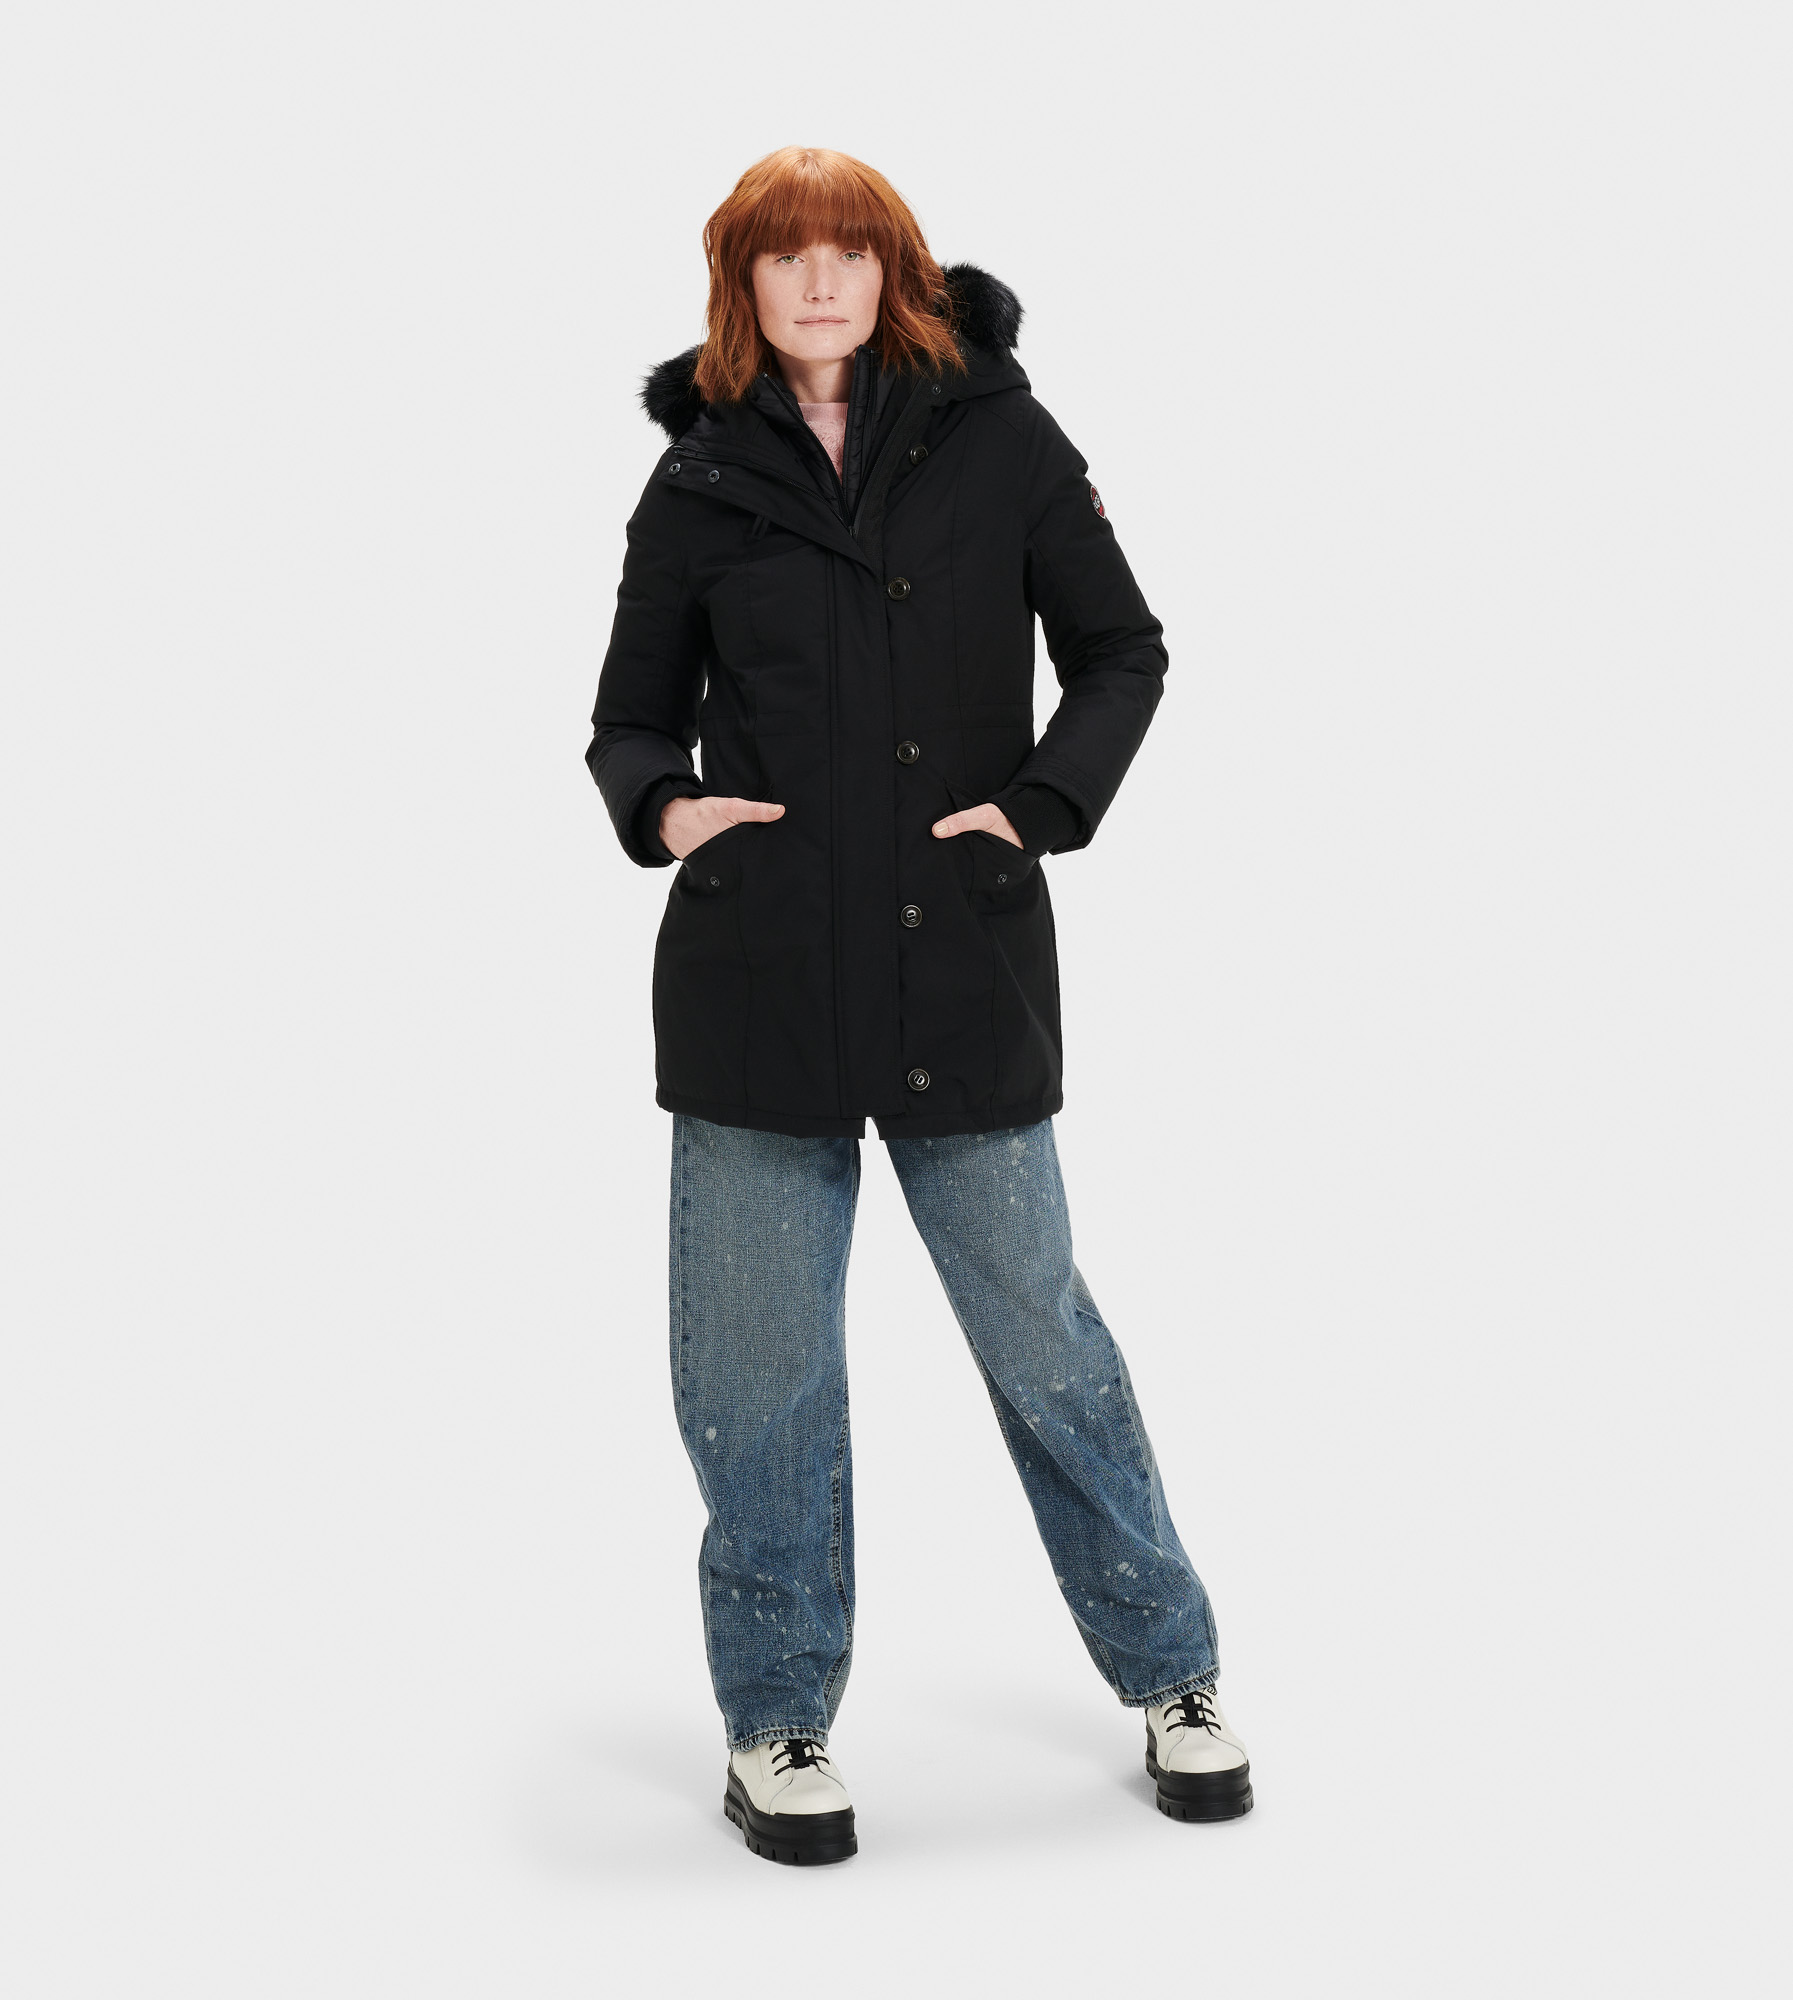 UGG Women's Adirondack Parka Sheepskin in Black, Size S Our most serious cold-weather coat, the Adirondack parka is made for temperatures as low as -31.4C (-24.52 F). Incorporating waterproof material and warming down, it also features a detachable vest that can be worn with the jacket, or by itself. With silky Toscana sheepskin trim and a cinched waist, you can stay stylish in any weather. Down-filled, waterproof tech parka with detachable nylon down vest. Waterproof Woven Shell: 85% Polyester, 15% Cotton. AATCC127 Waterproof tested. Temperature rated at -31.4° Celsius. Fleece pocket linings. Removable Toscana fur hood trim. Internal cell phone pocket. 32  center back length. Removable down vest liner: 24  center back length. Dry clean only. UGG Women's Adirondack Parka Sheepskin in Black, Size S